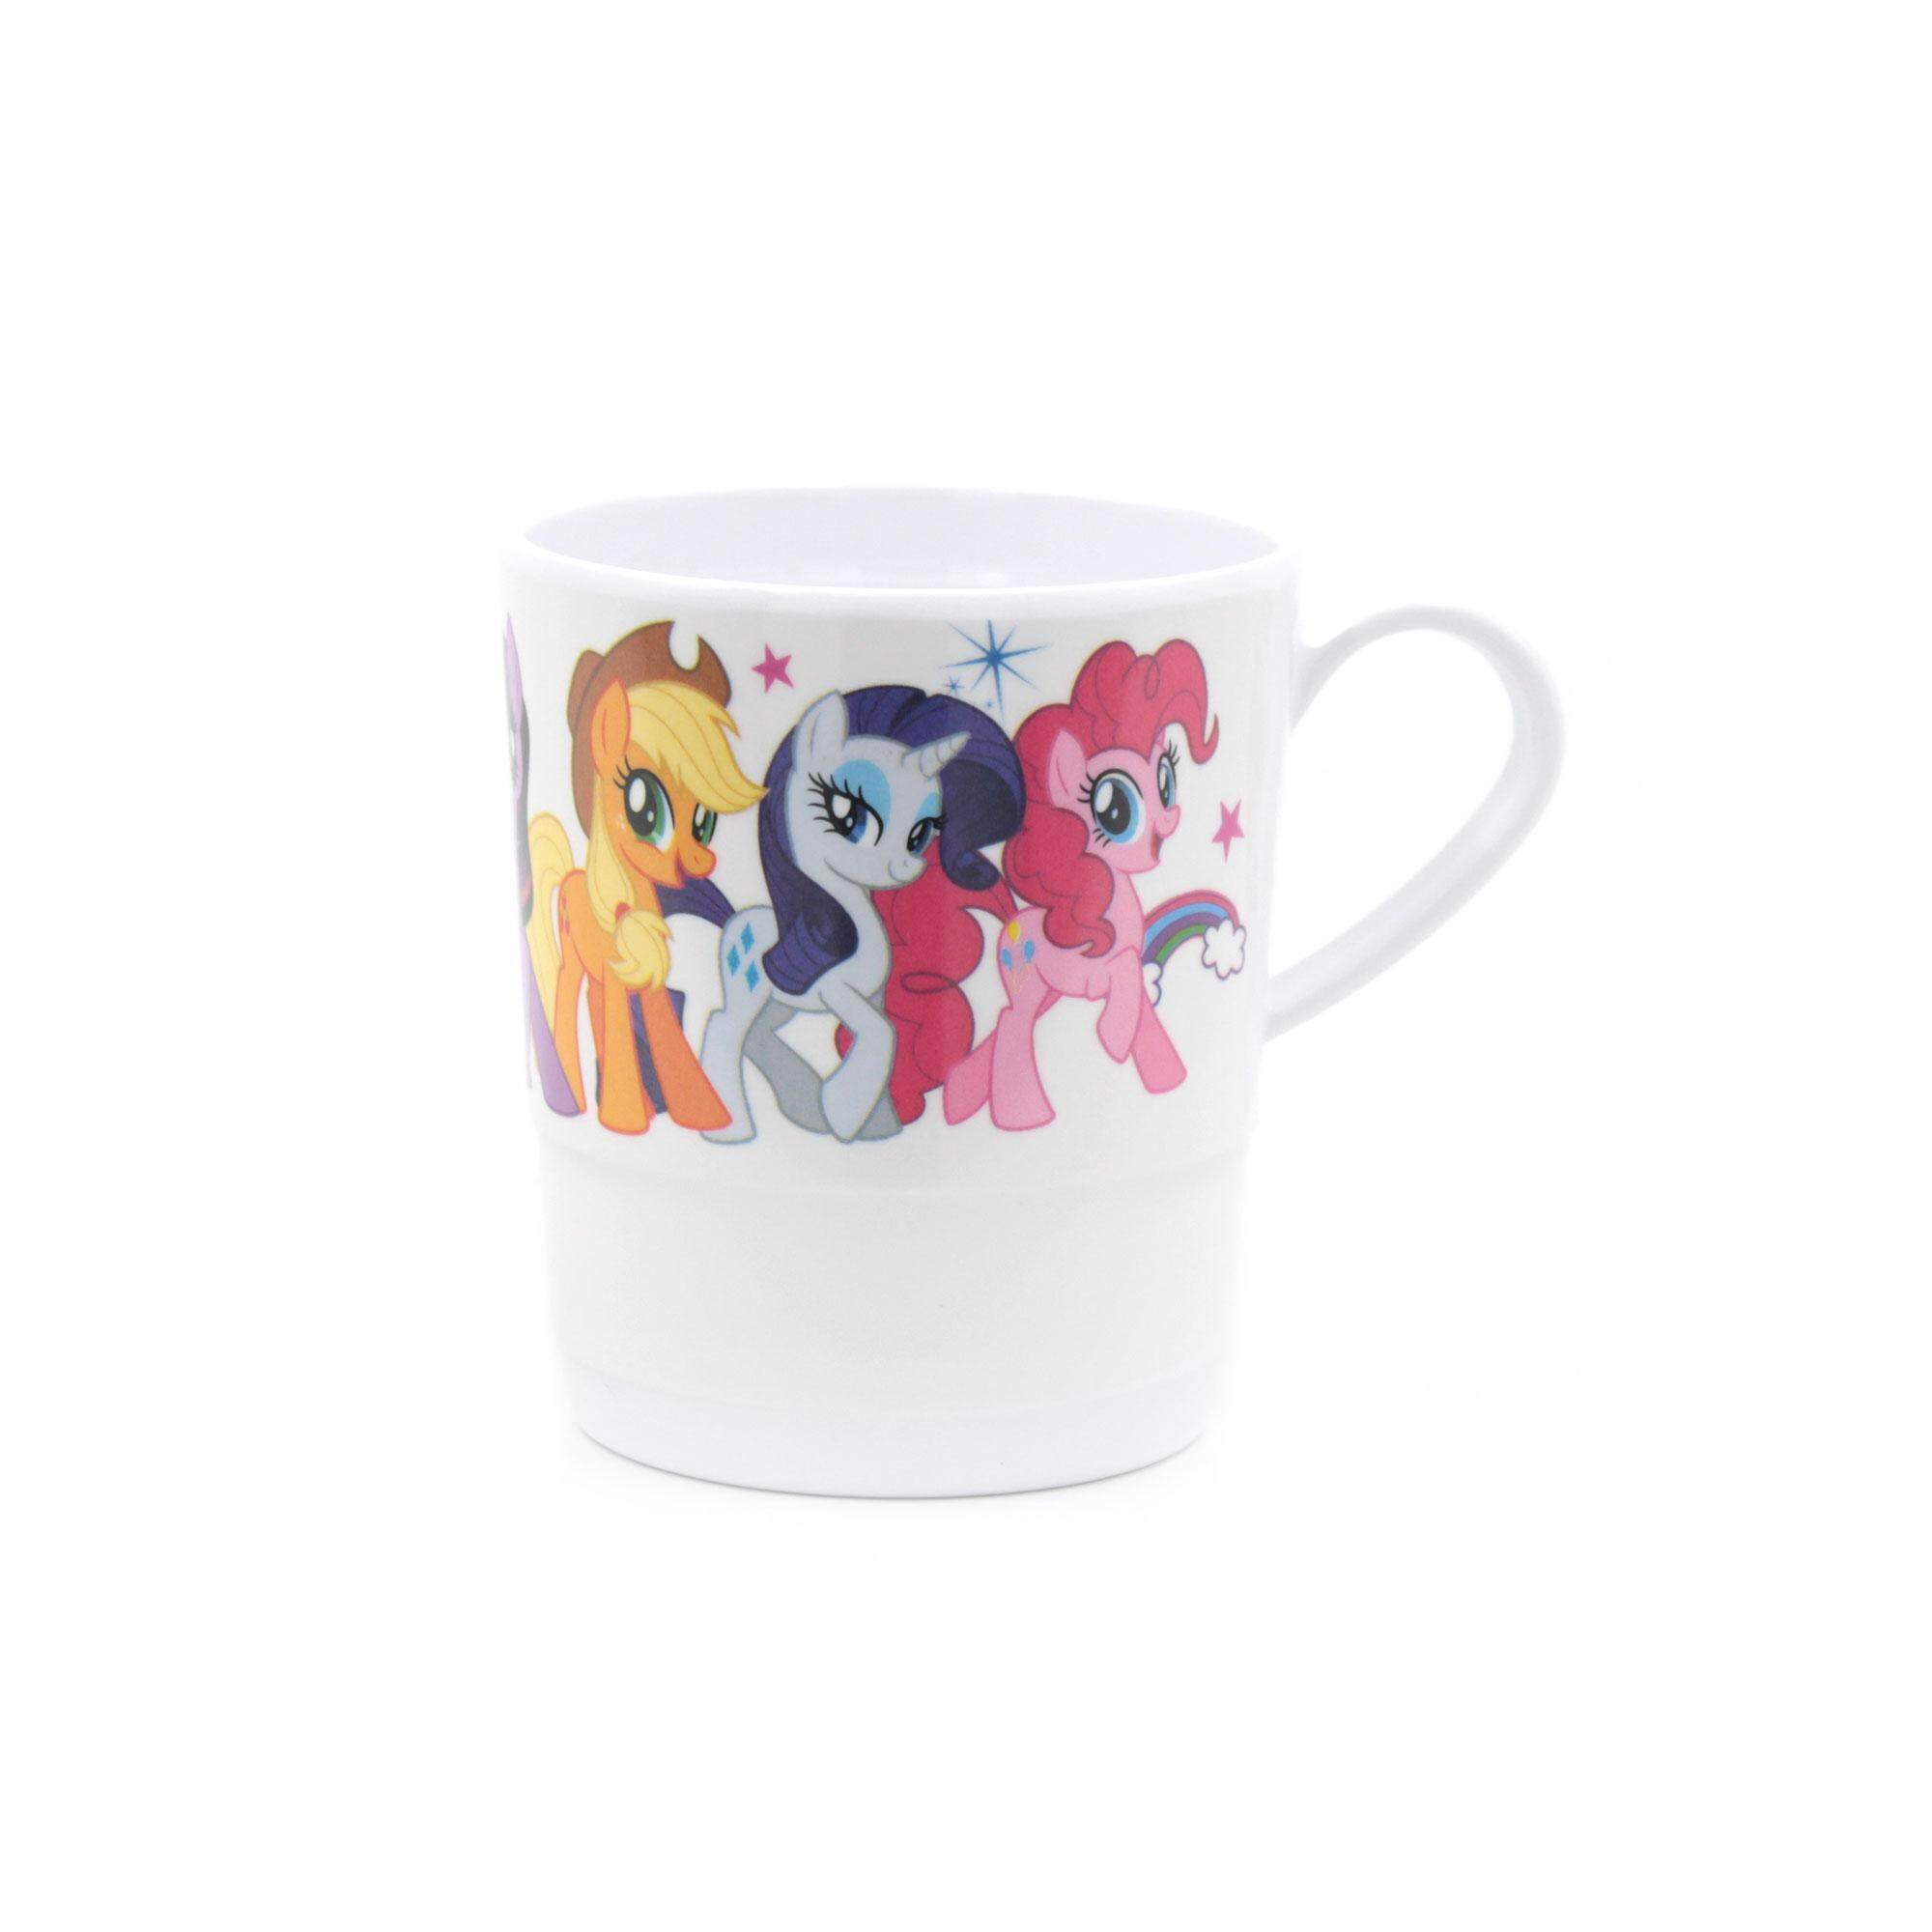 My Little Pony 3 Kids Party Stacking Mug - Friendship Is Magic